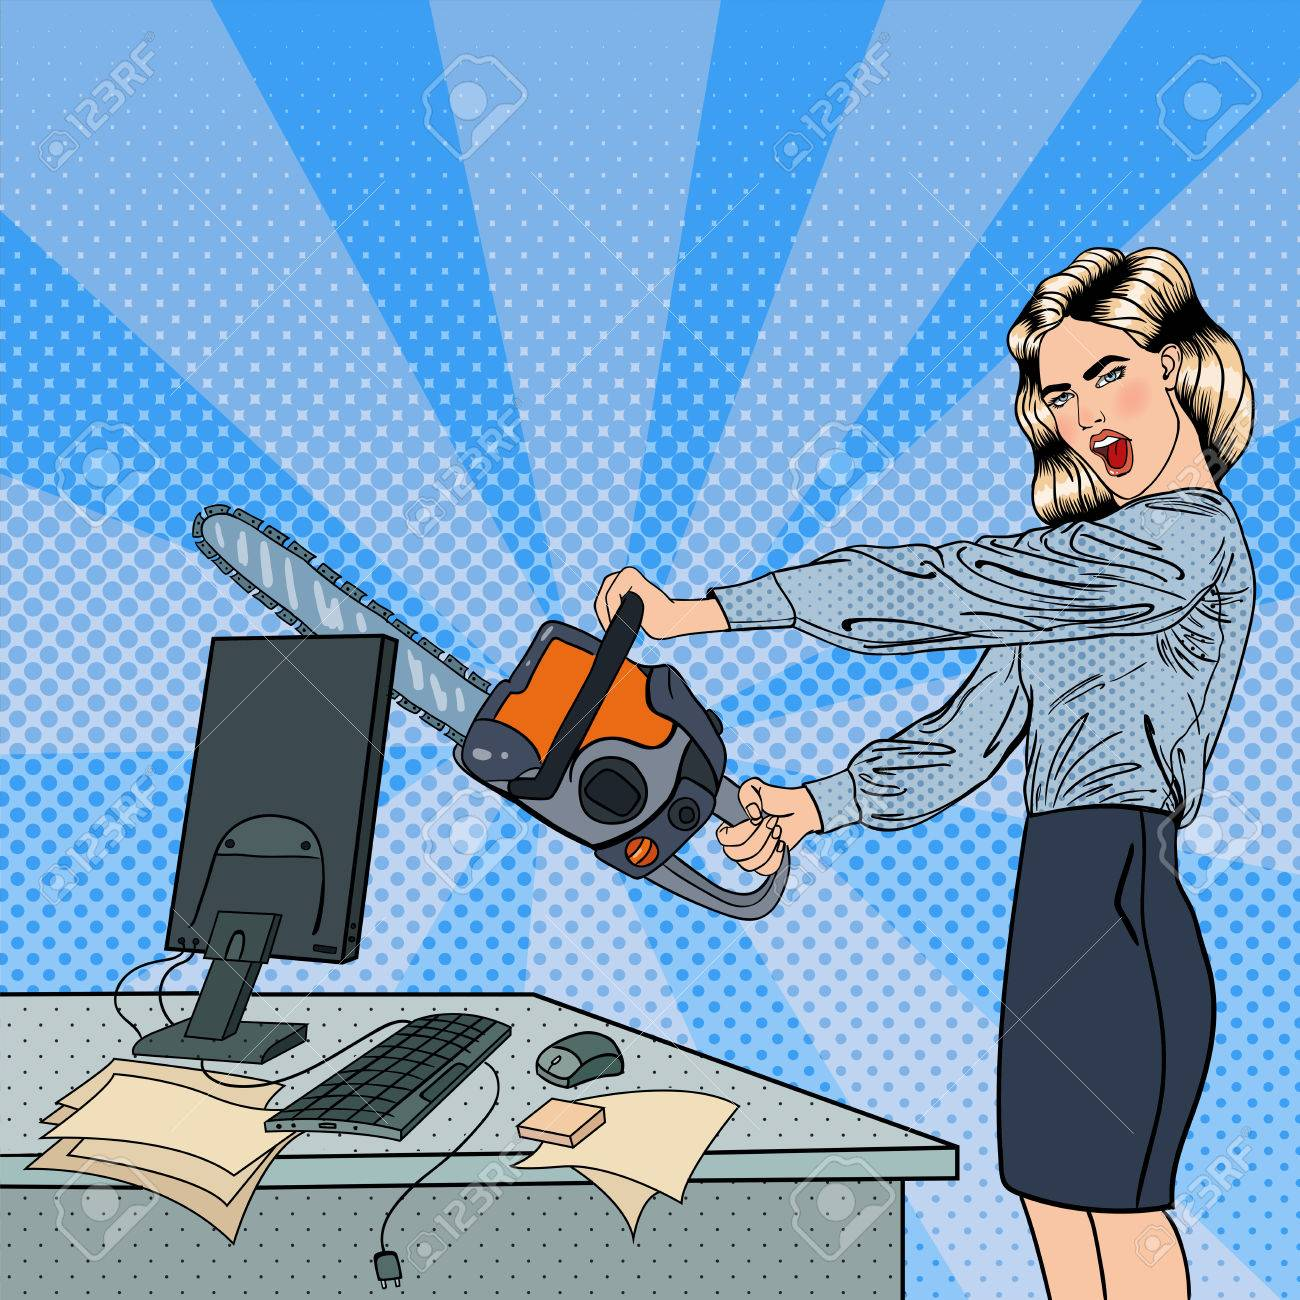 Angry Business Woman Crashes her Computer with Chainsaw. Pop Art. Vector illustration - 58725920